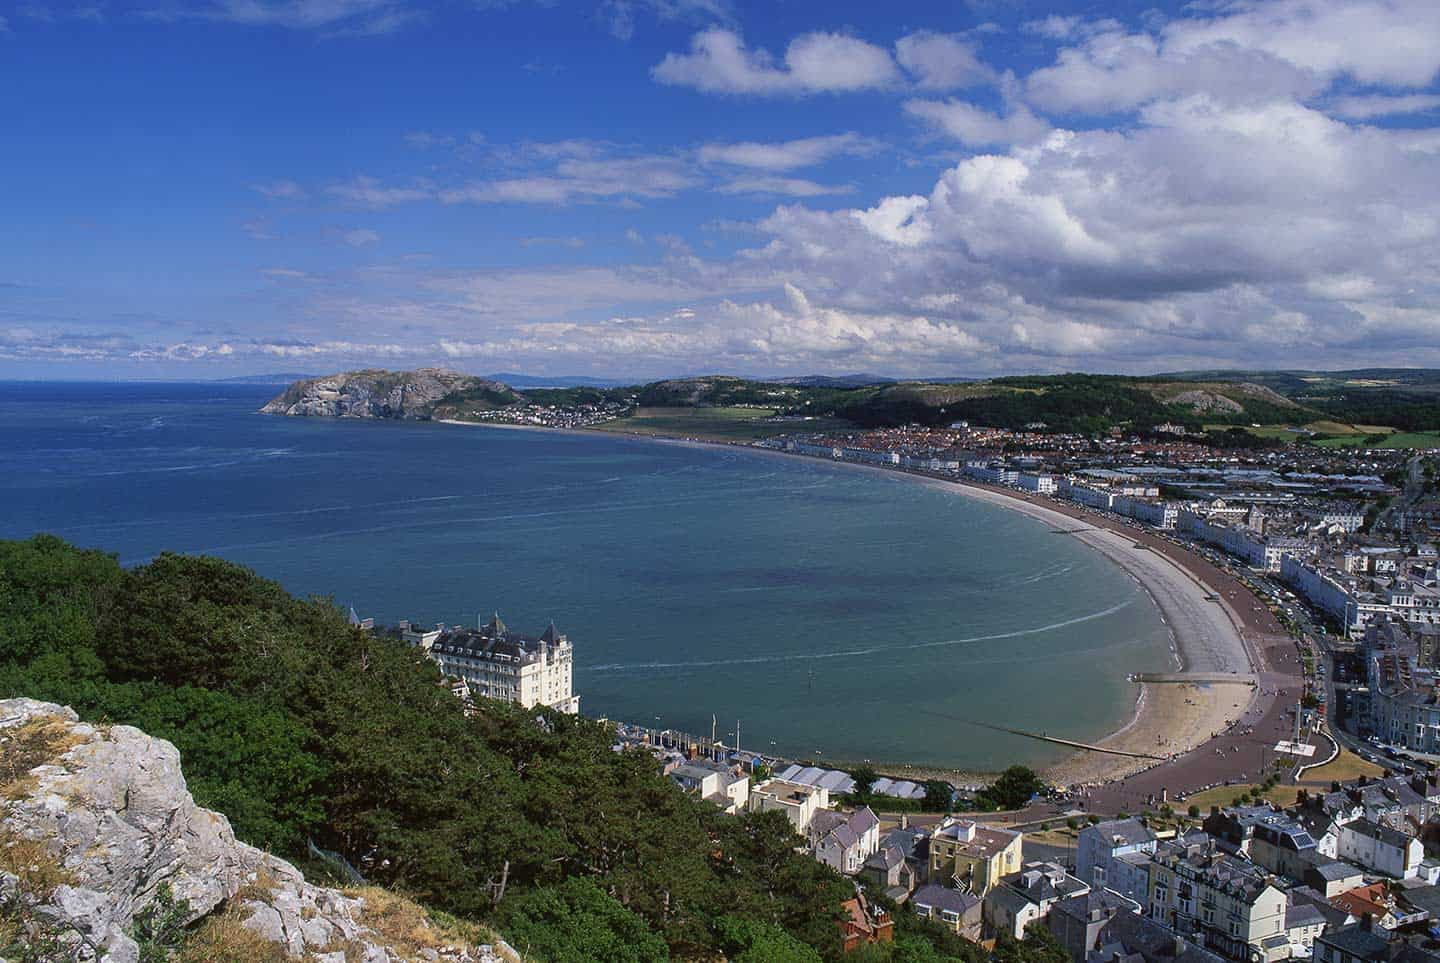 Image of Llandudno from the Great Orme